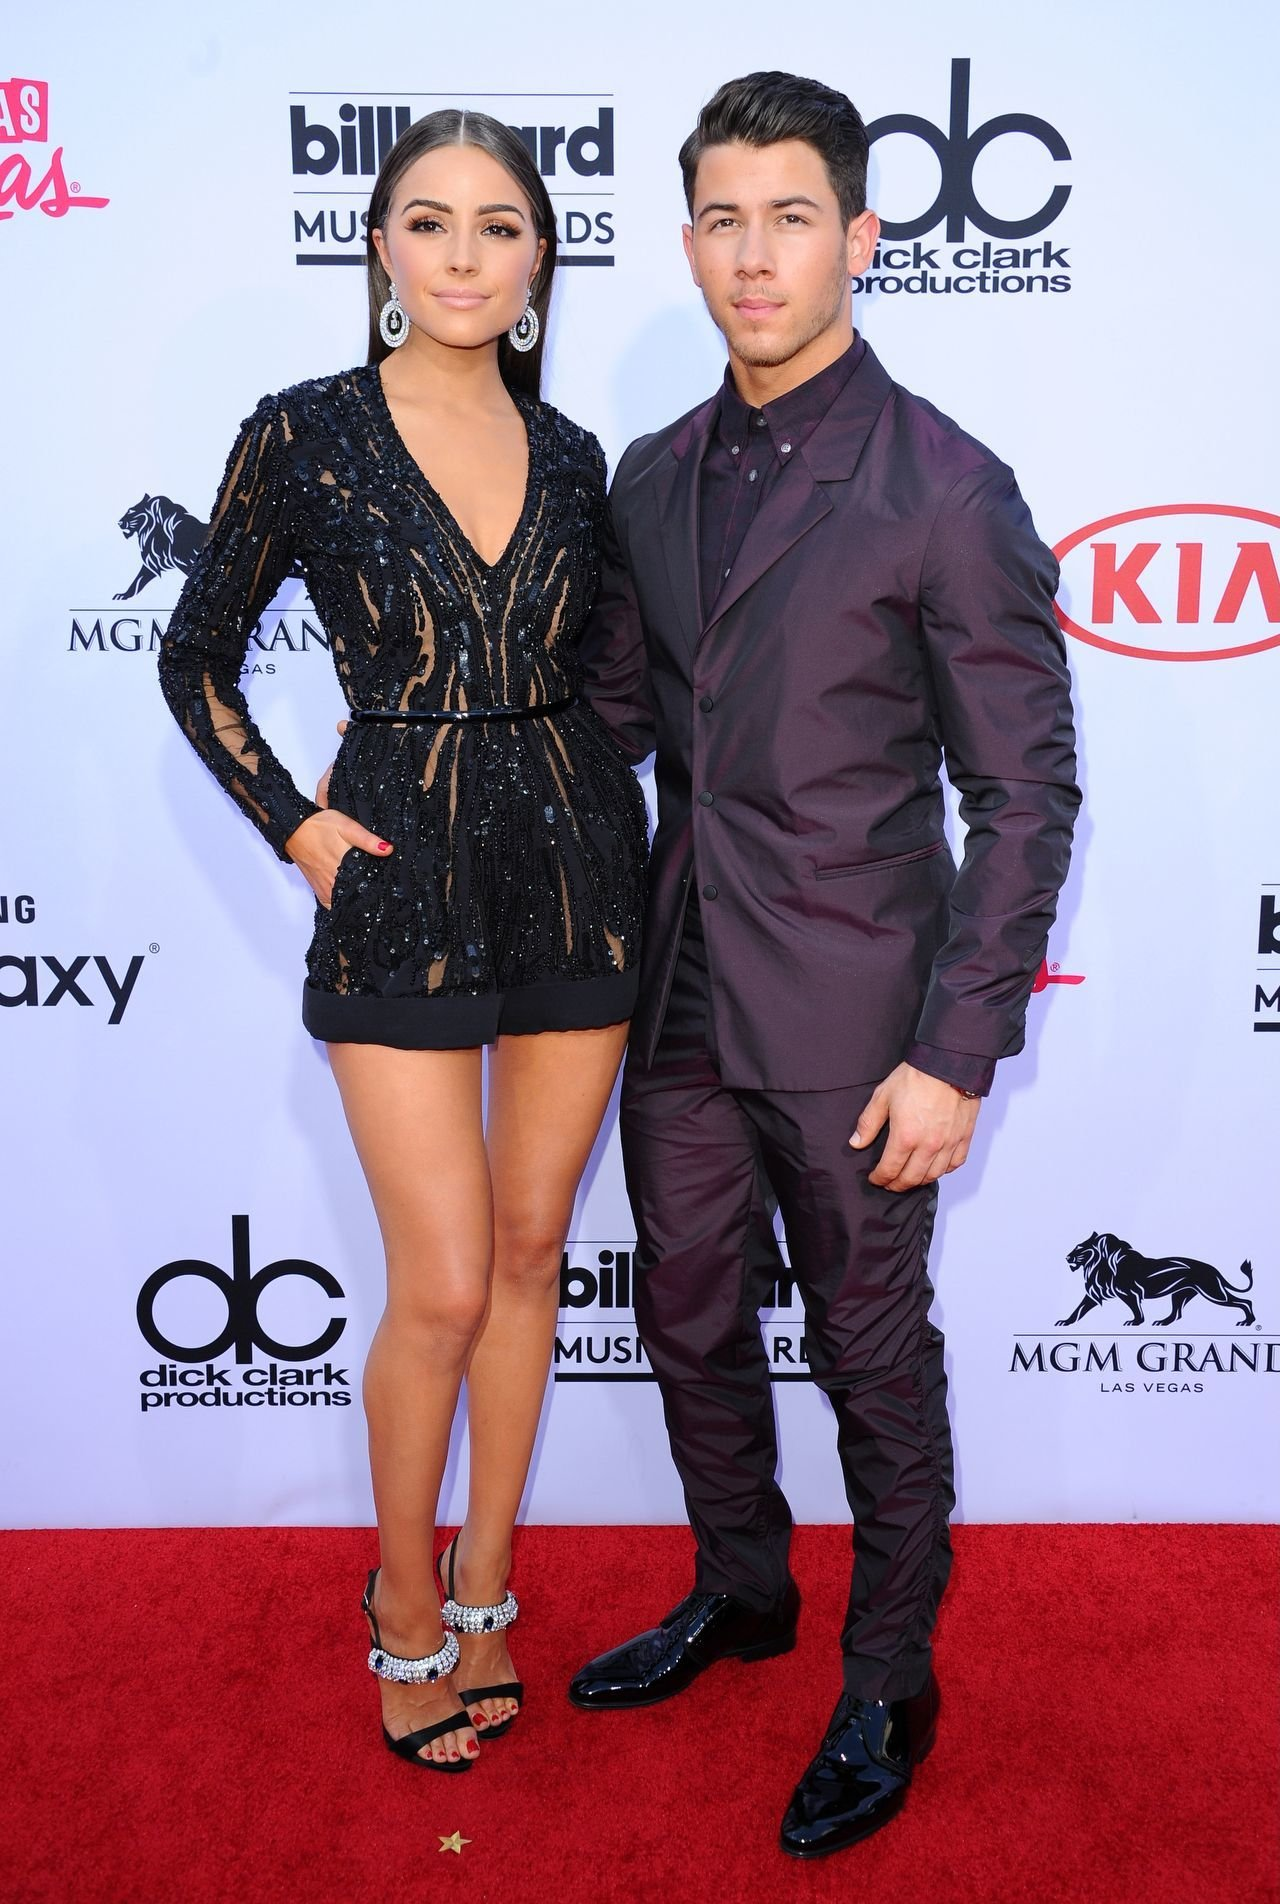 (4778727fg) Olivia Culpo and Nick Jonas Billboard Music Awards arrivals, Las Vegas, America - 17 May 2015, Image: 245499634, License: Rights-managed, Restrictions: , Model Release: no, Credit line: Profimedia, TEMP Rex Features